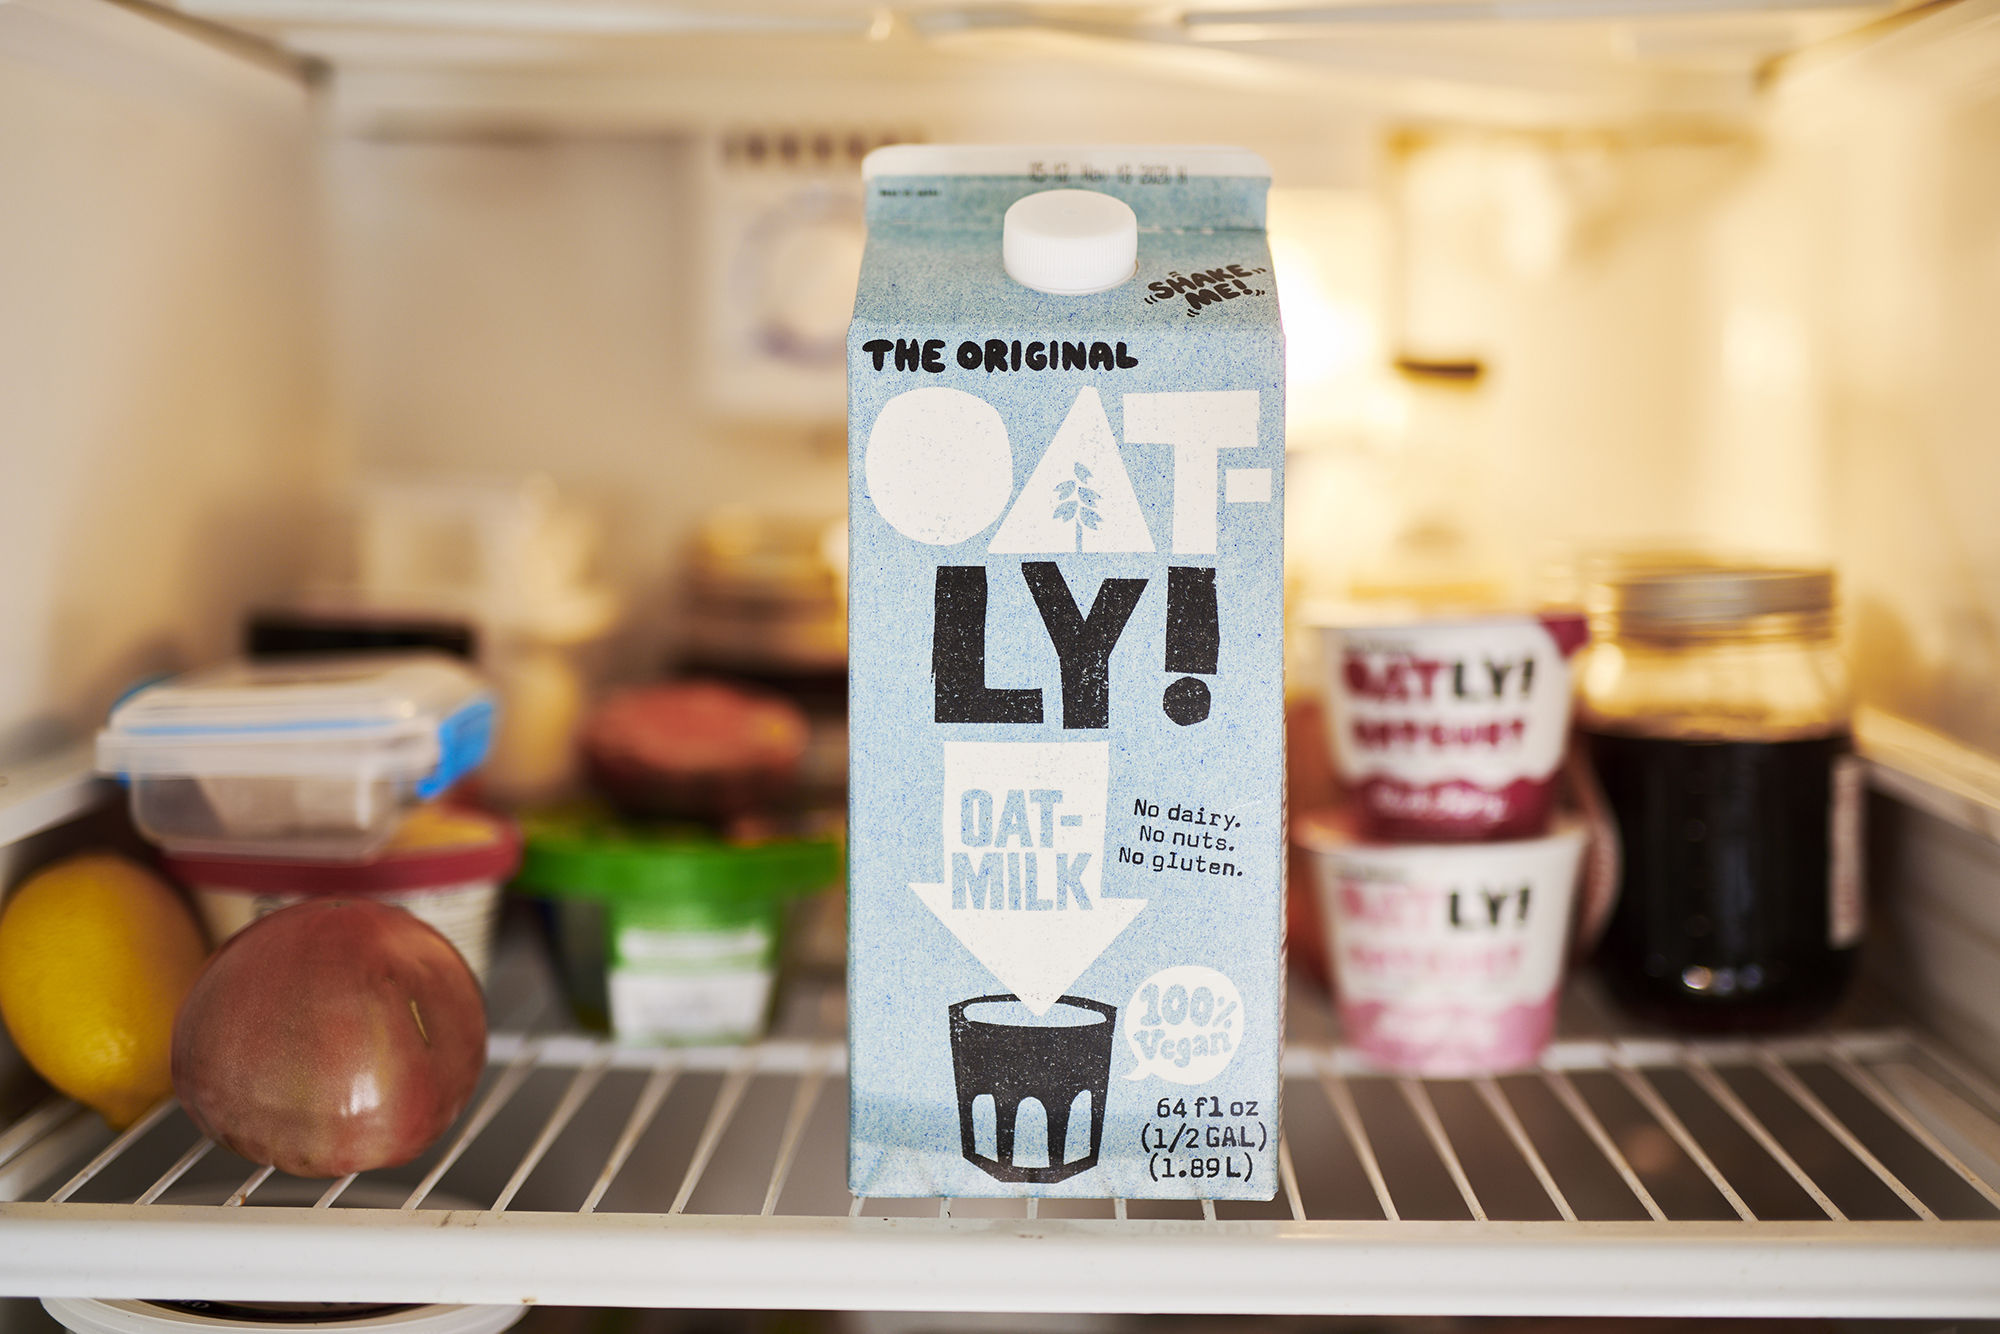 Oprah-backed Oatly just made a move to go public